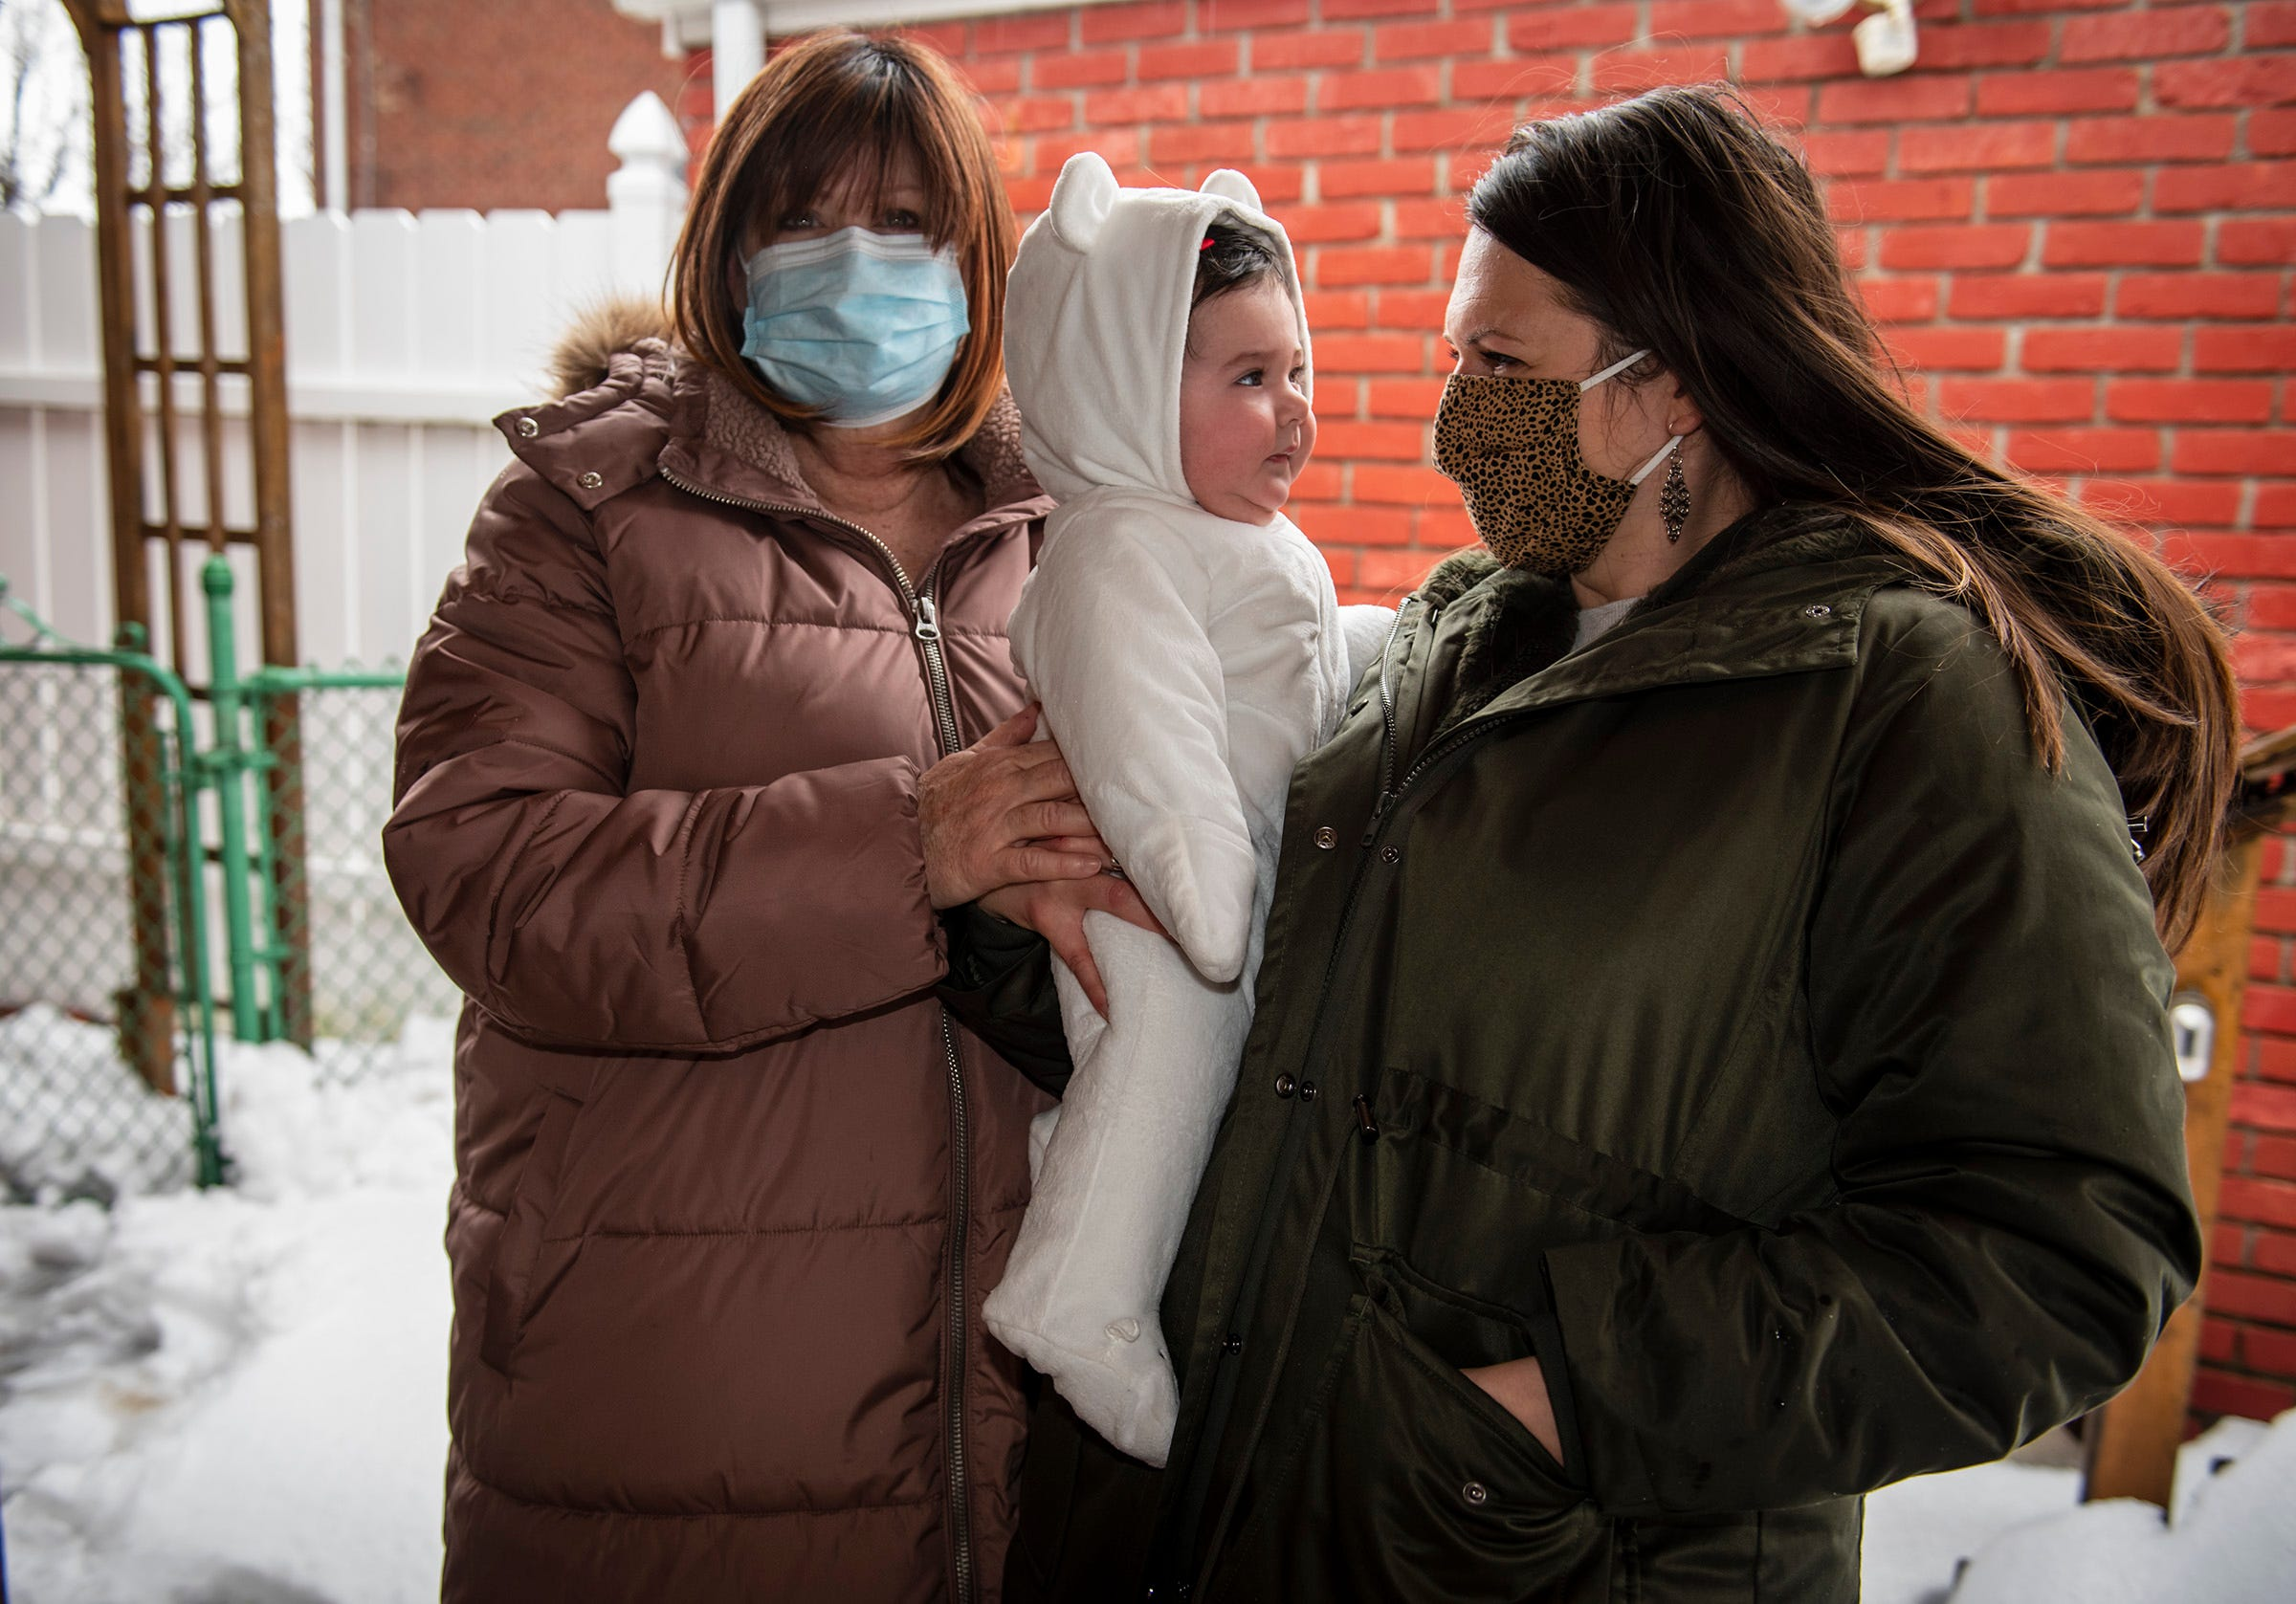 """Emily Snyder, right, of Dormont, works from home while her mom, Arden Vernacchio, right, comes over to take care of her 4-month-old daughter Bridget. """"It's like the world stopped turning,"""" said Snyder, 32."""